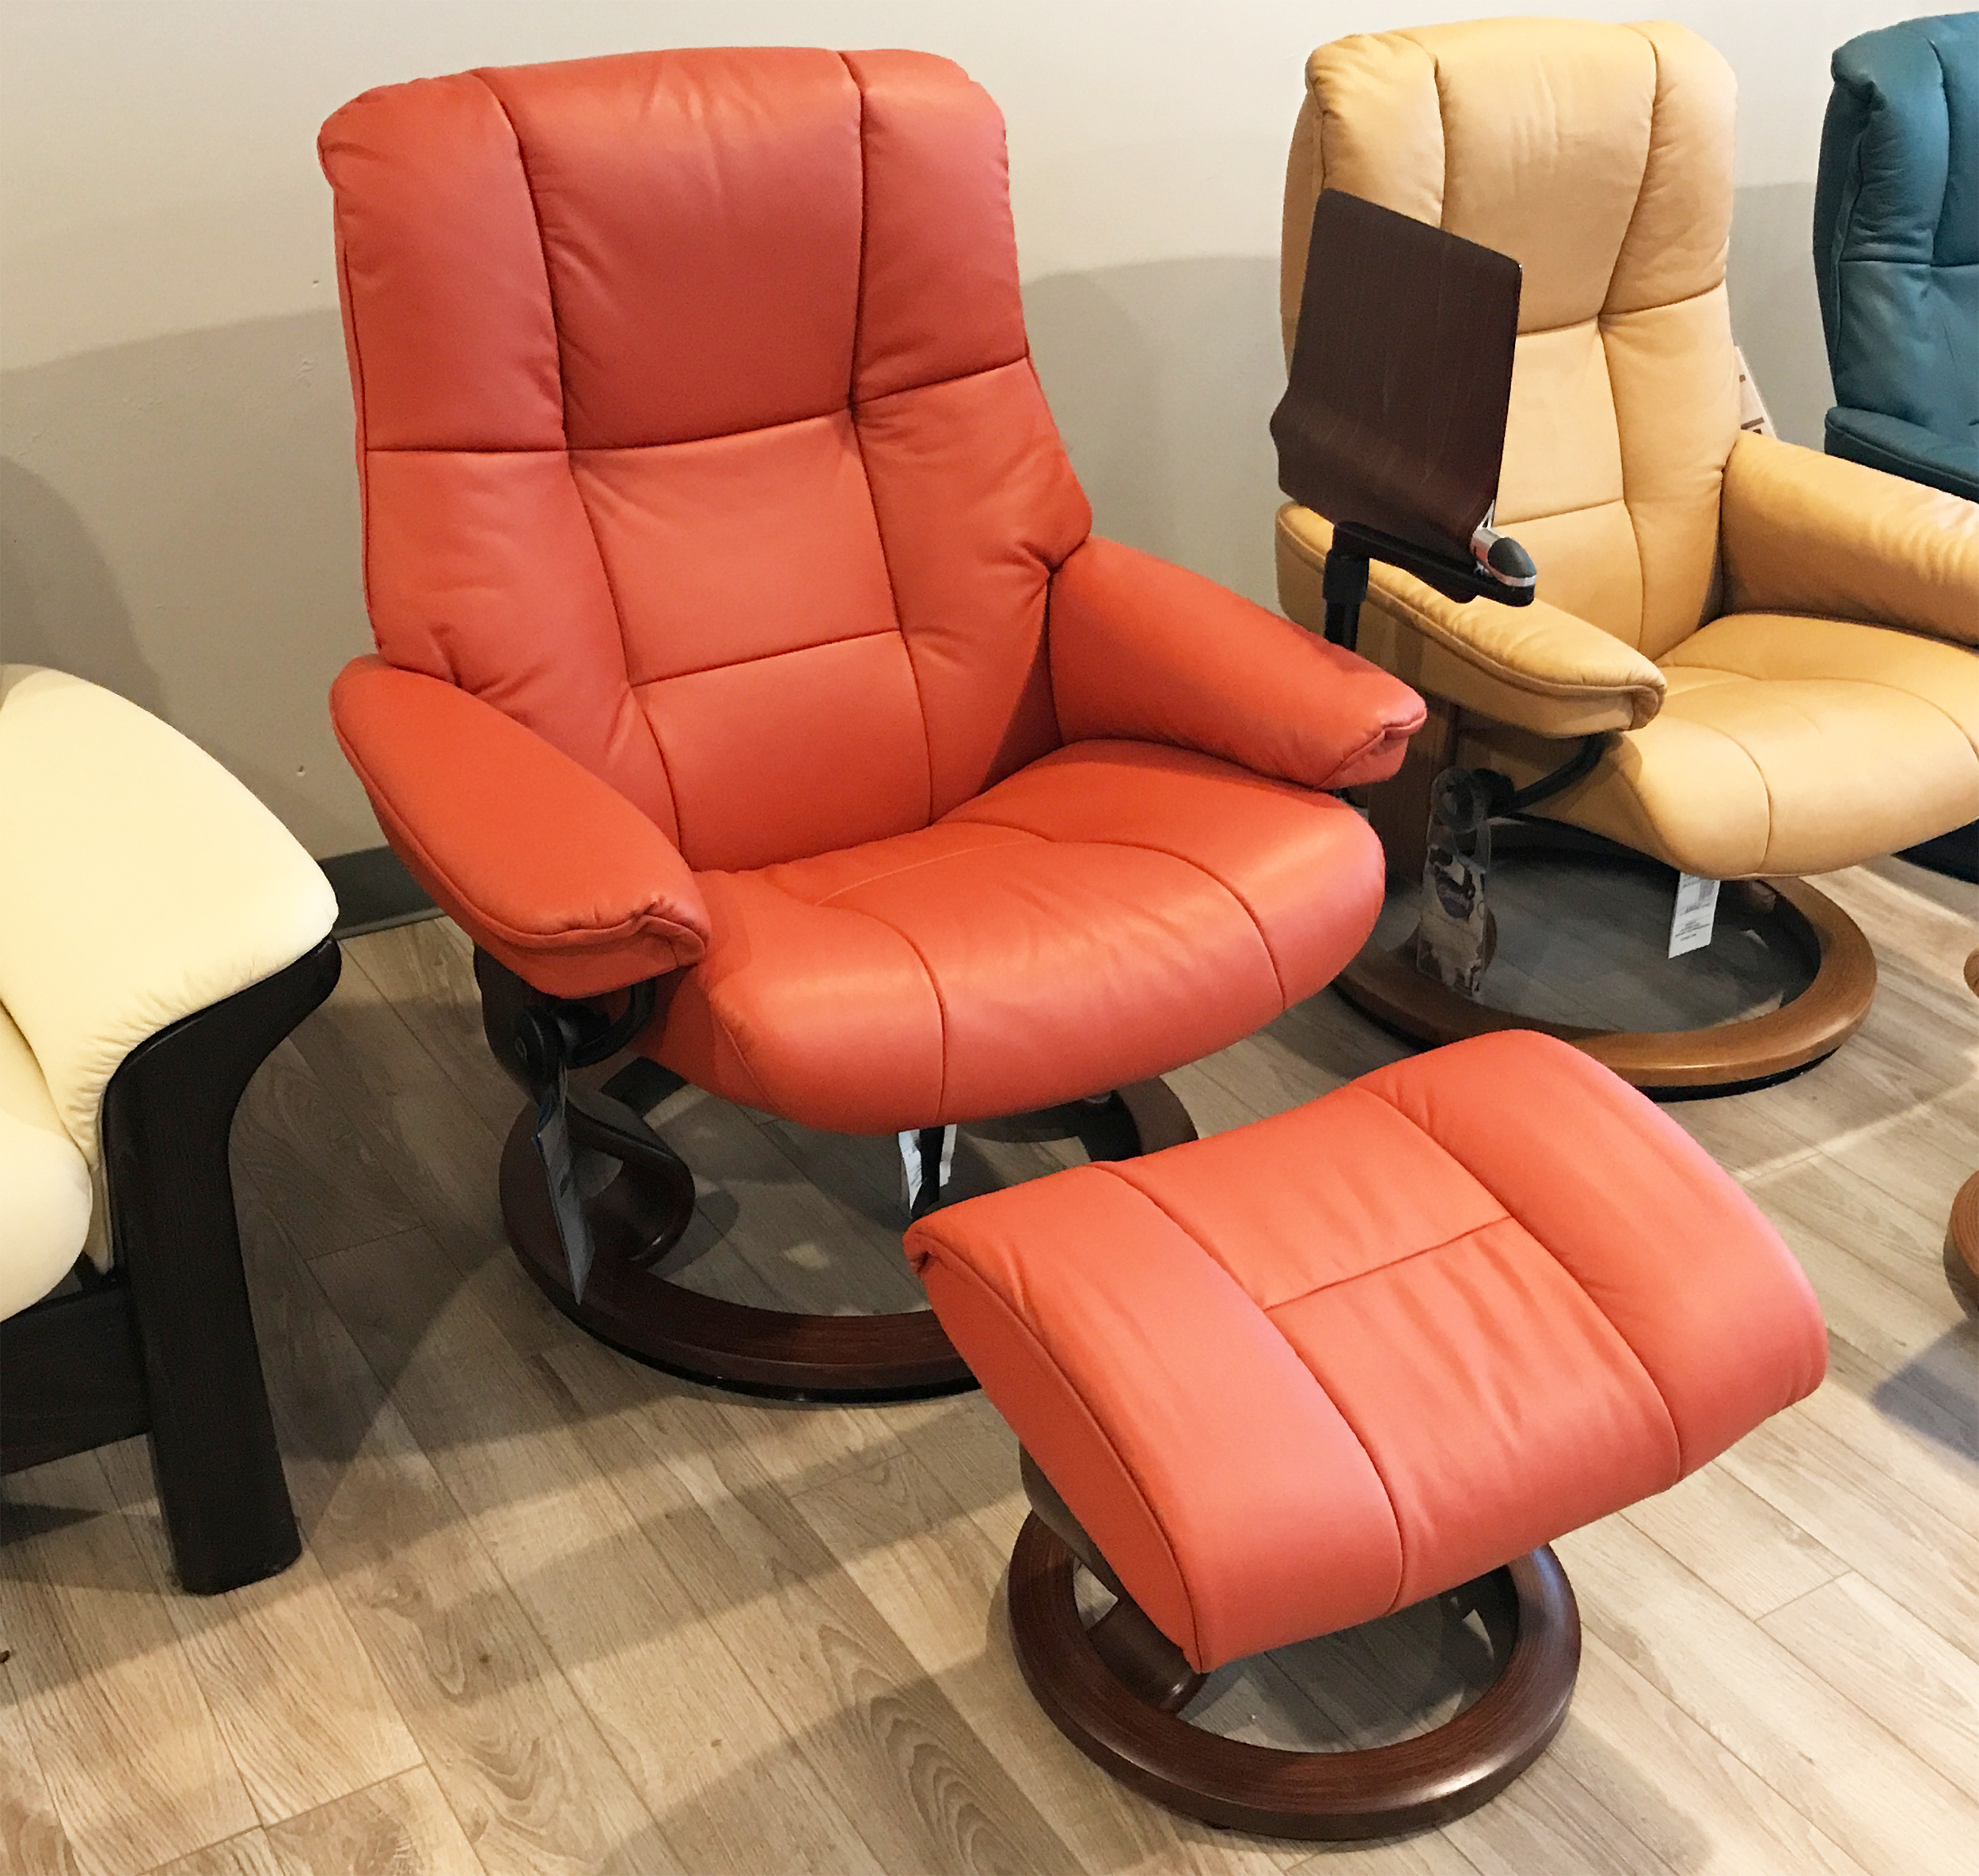 Stressless Paloma Stressless Mayfair Paloma Henna Leather Recliner Chair And Ottoman By Ekornes